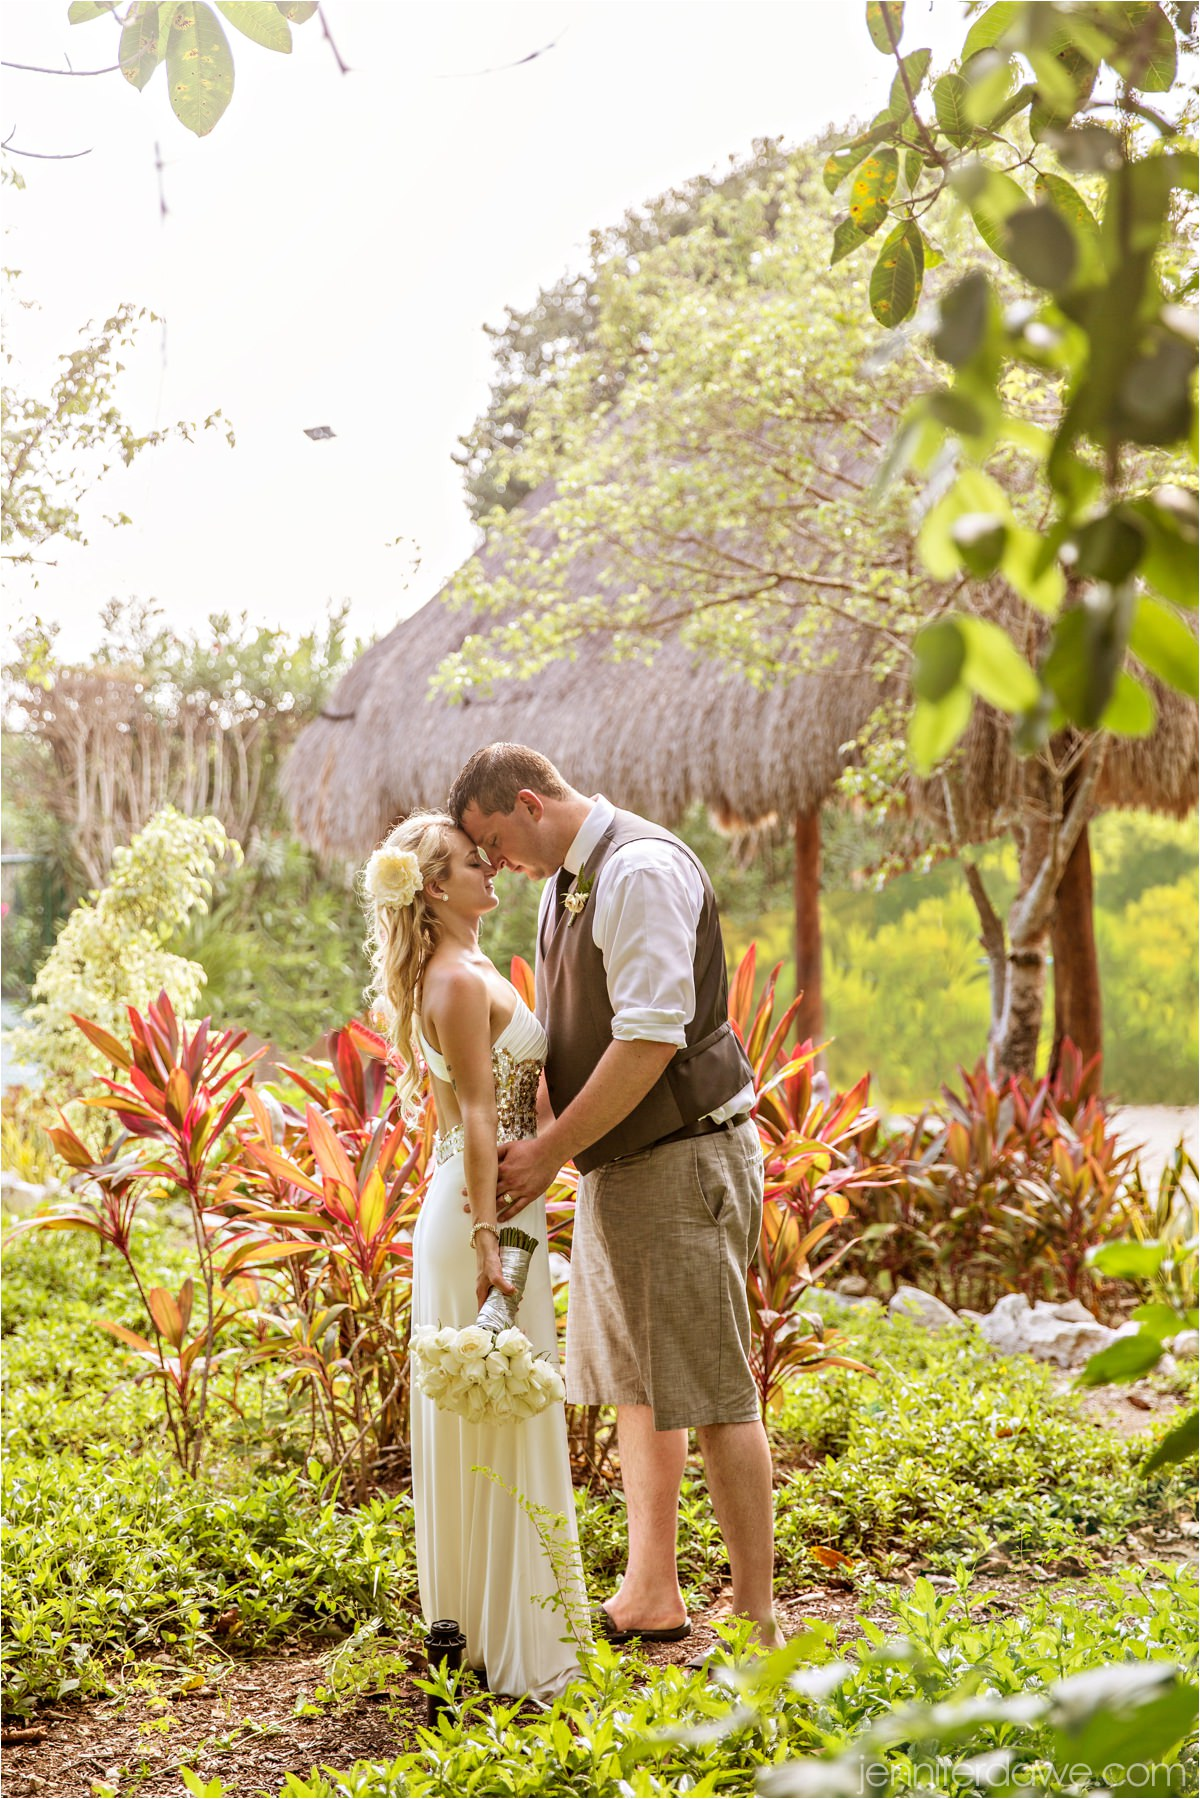 Grand Sirenis Riviera Maya Wedding Photographer Destination Wedding Photographers Mexico Wedding Photographers Cancun Wedding Photographers45